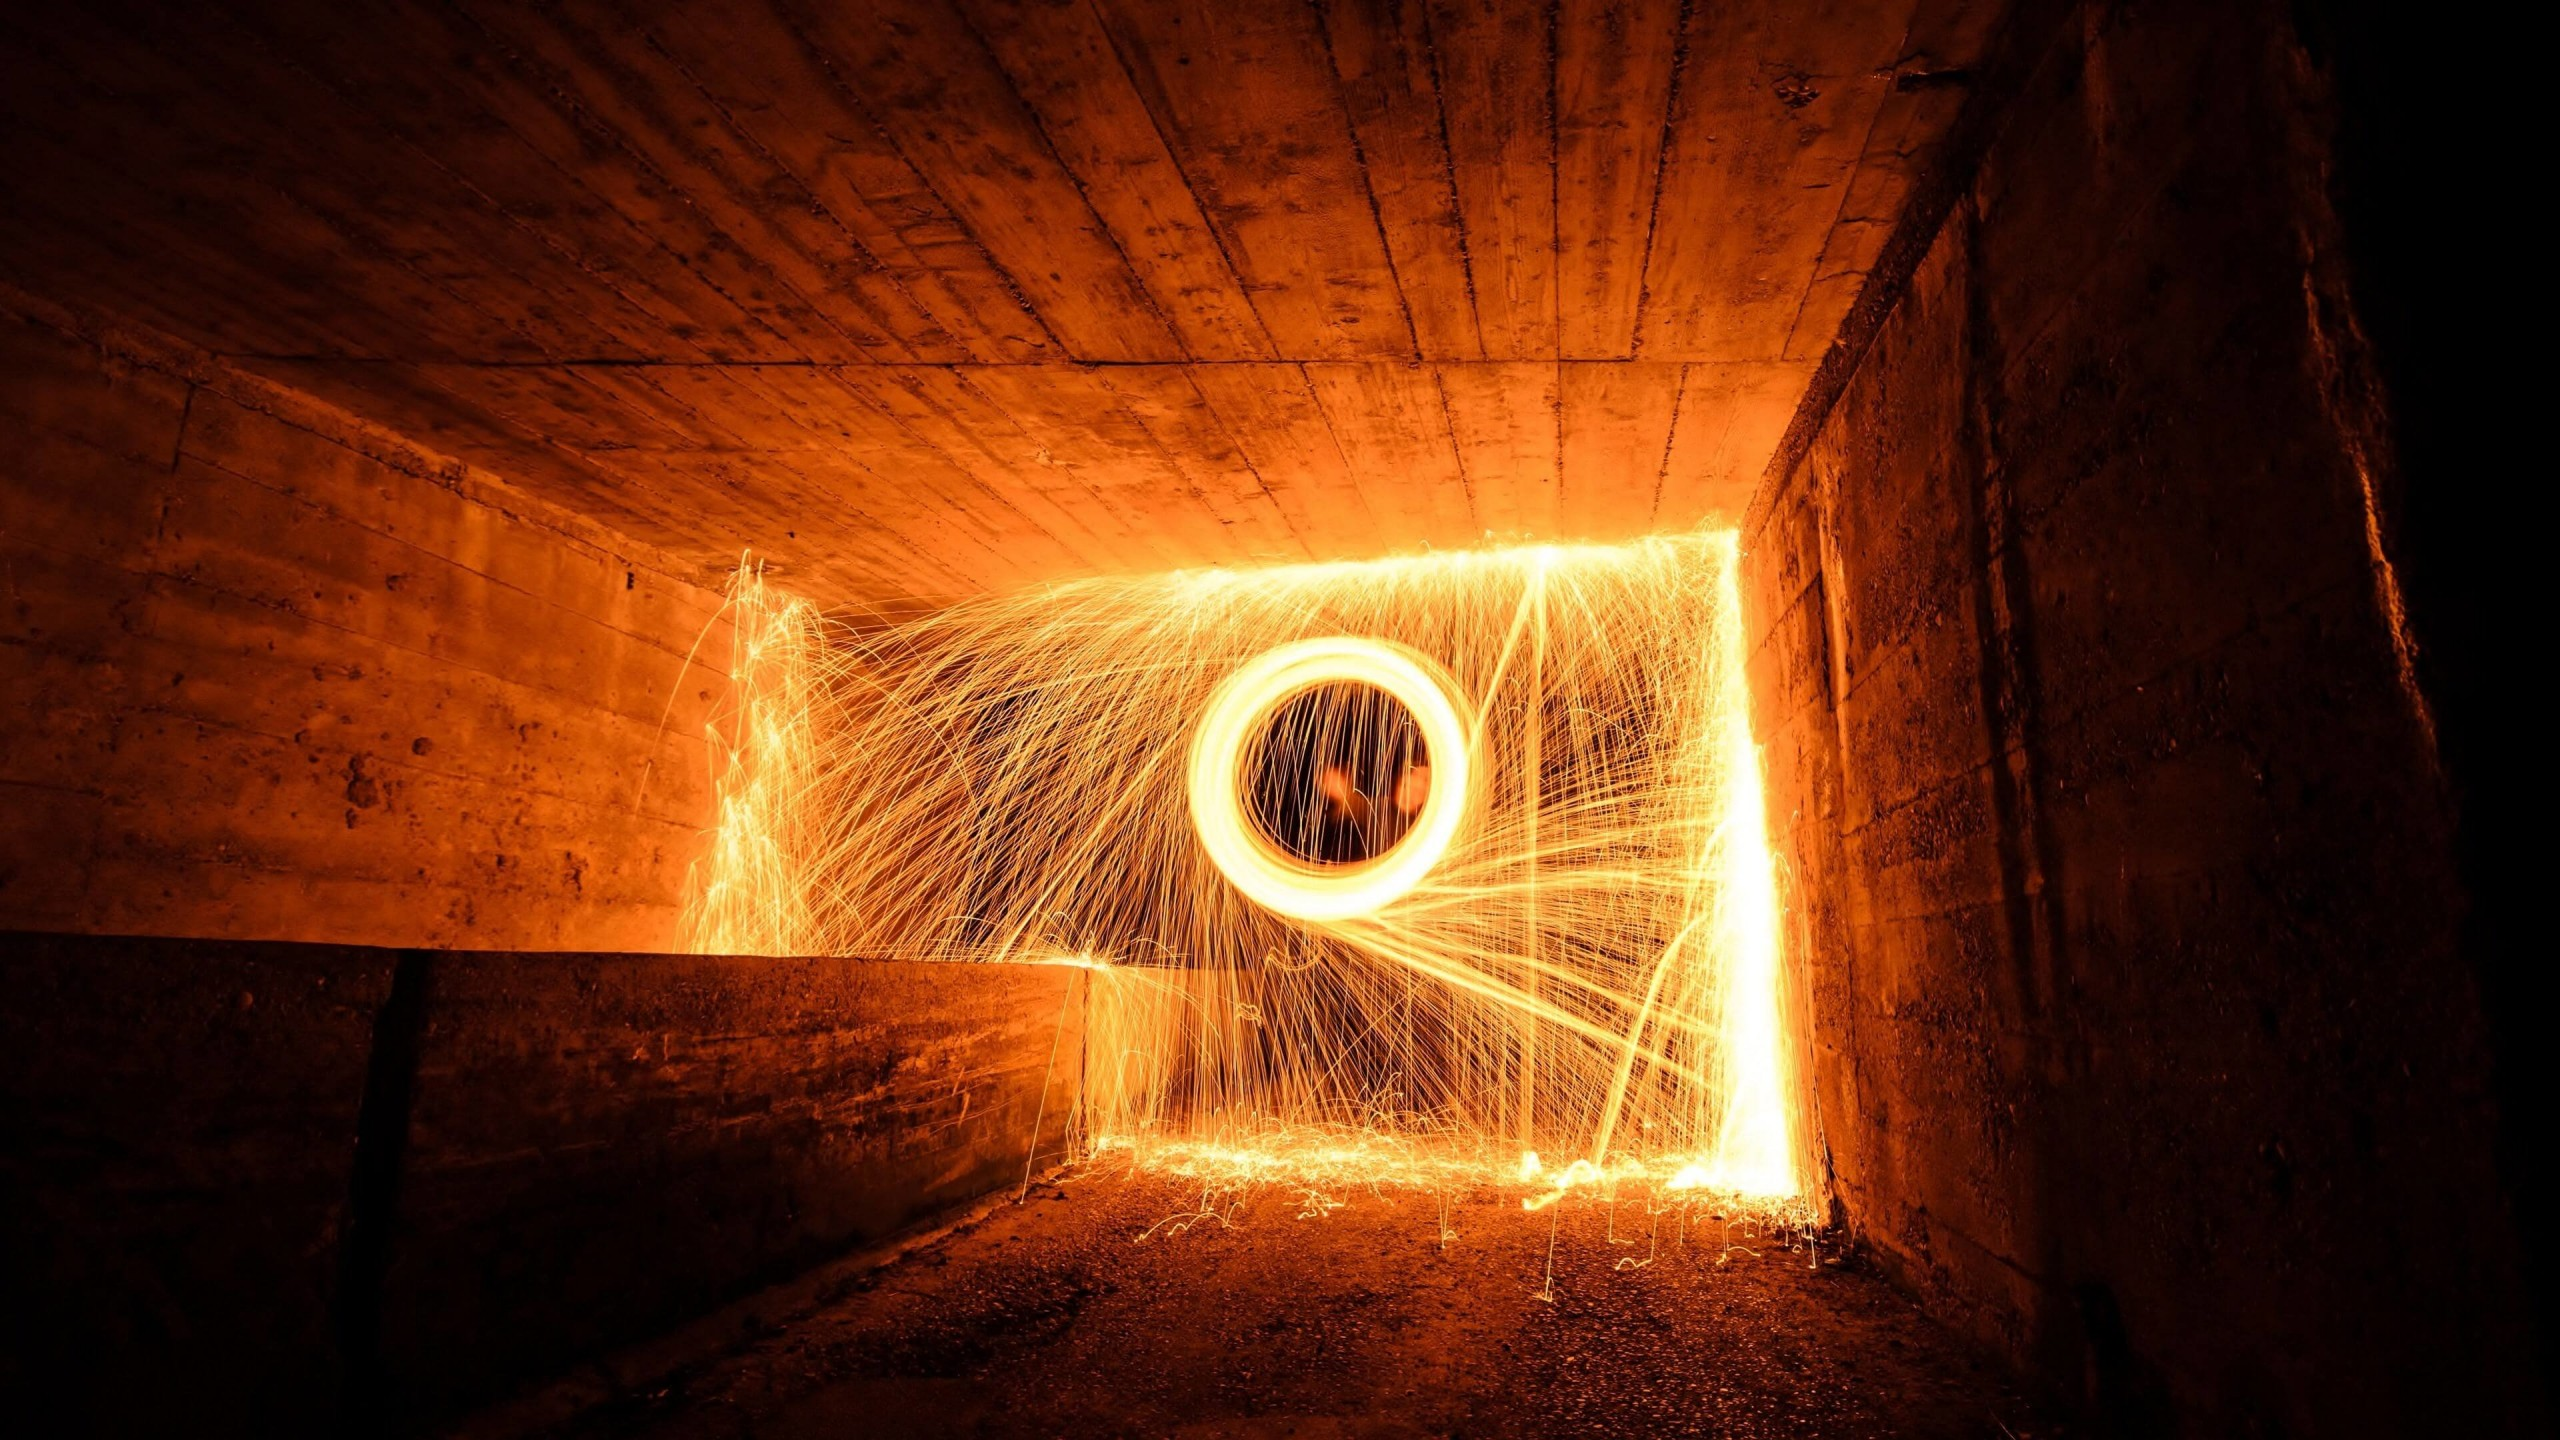 Wire Wool Long Exposure Wallpaper for Social Media YouTube Channel Art